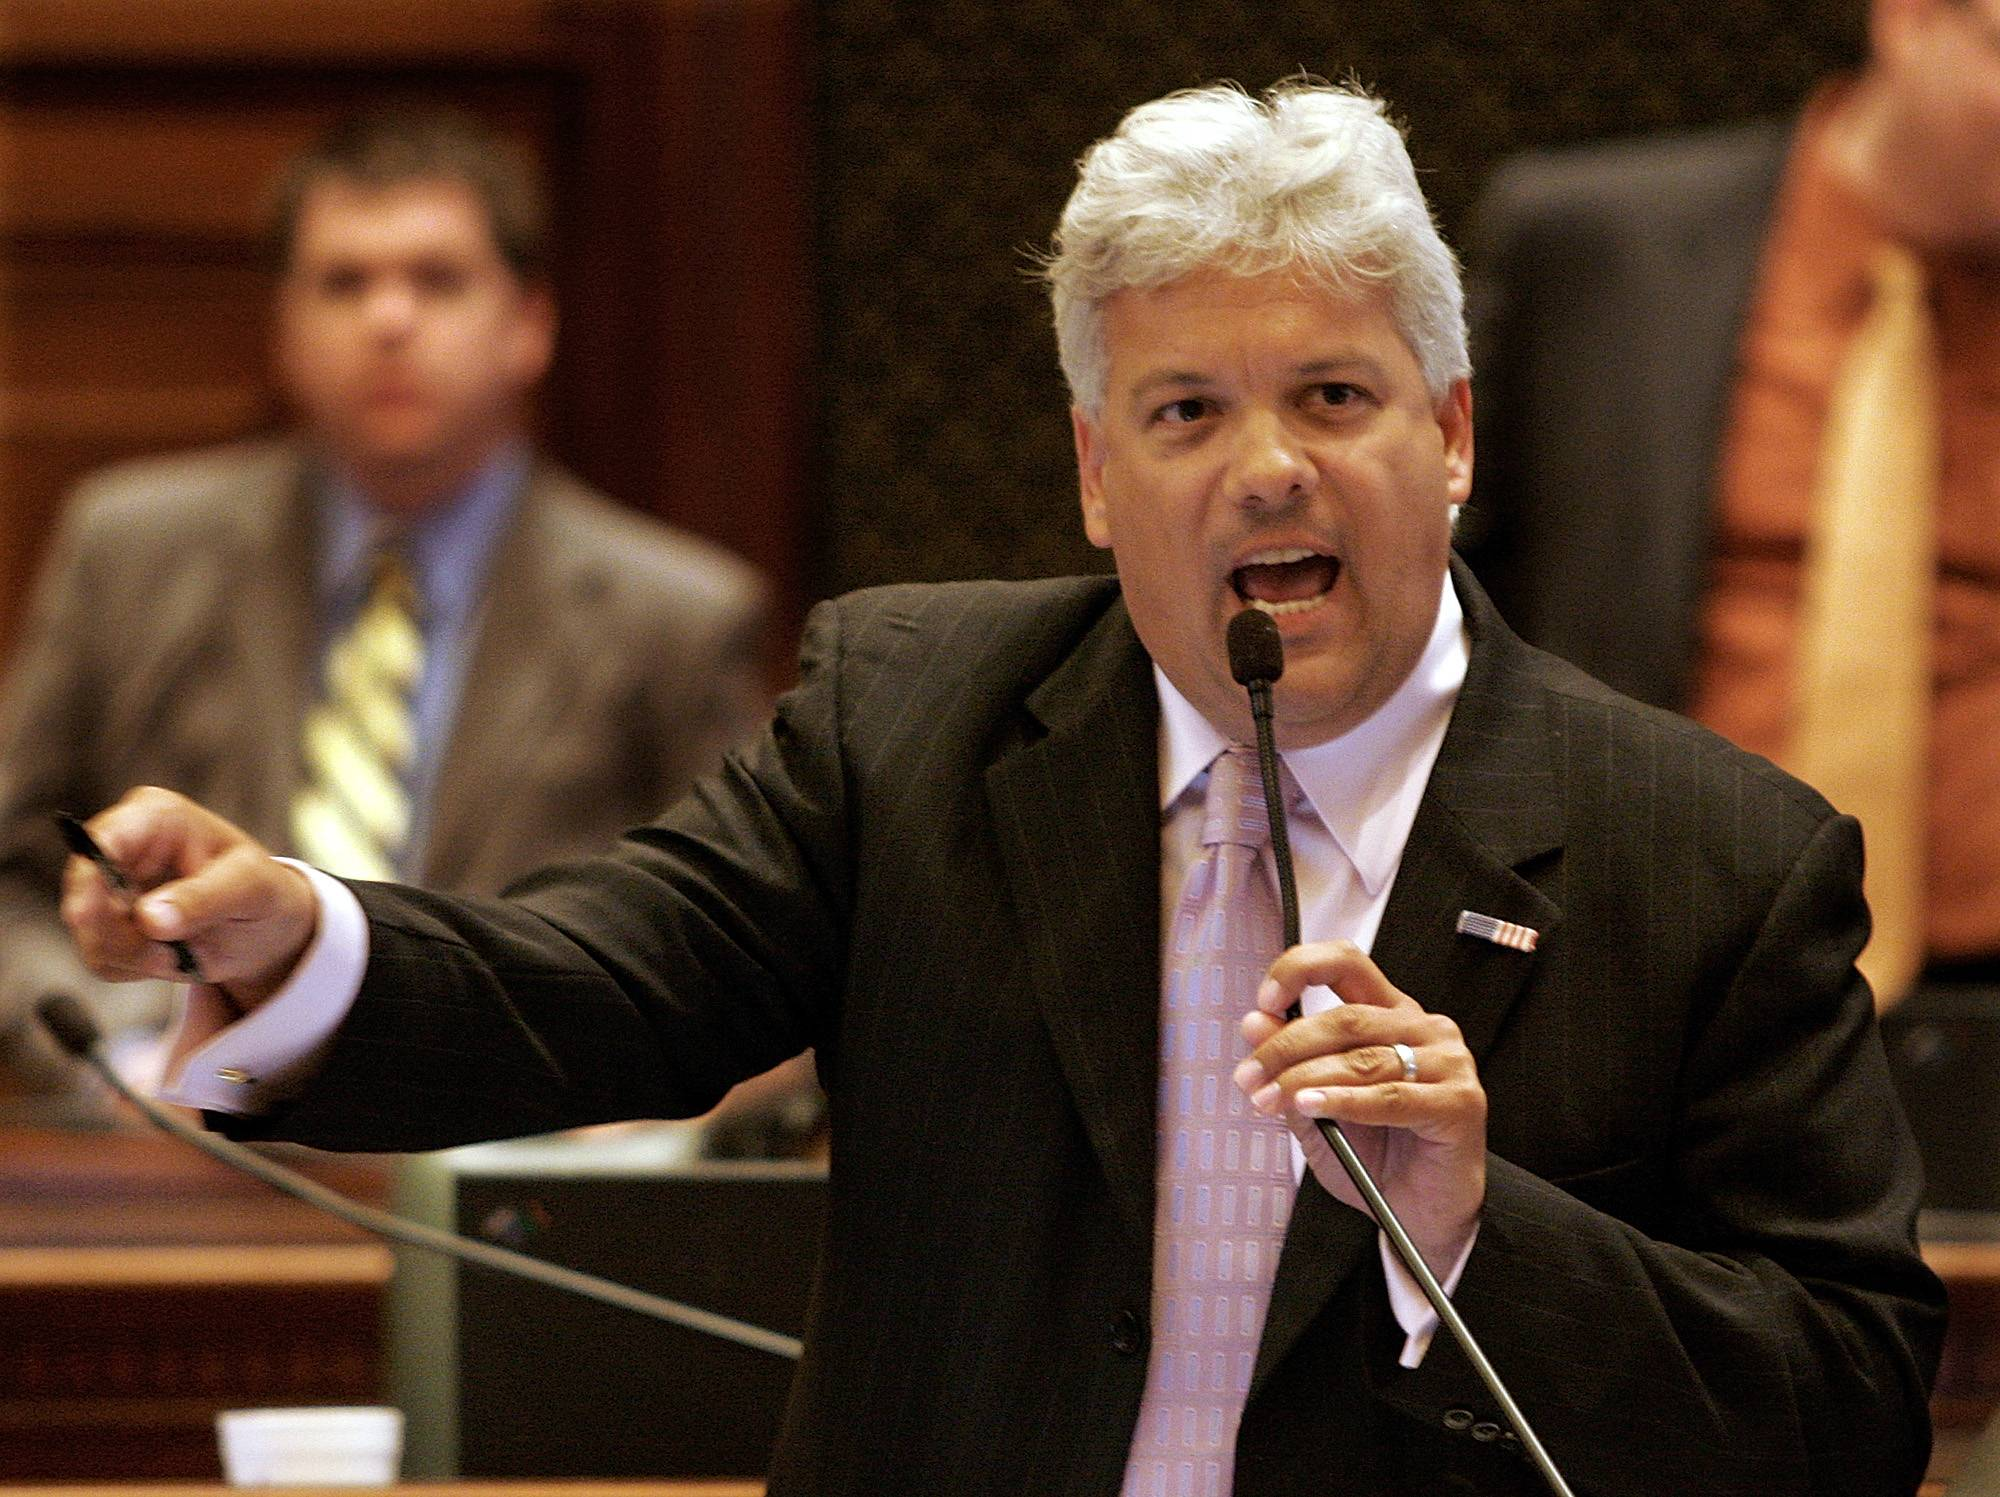 Departing lawmakers lament loss of independence, spike in money in Illinois politics